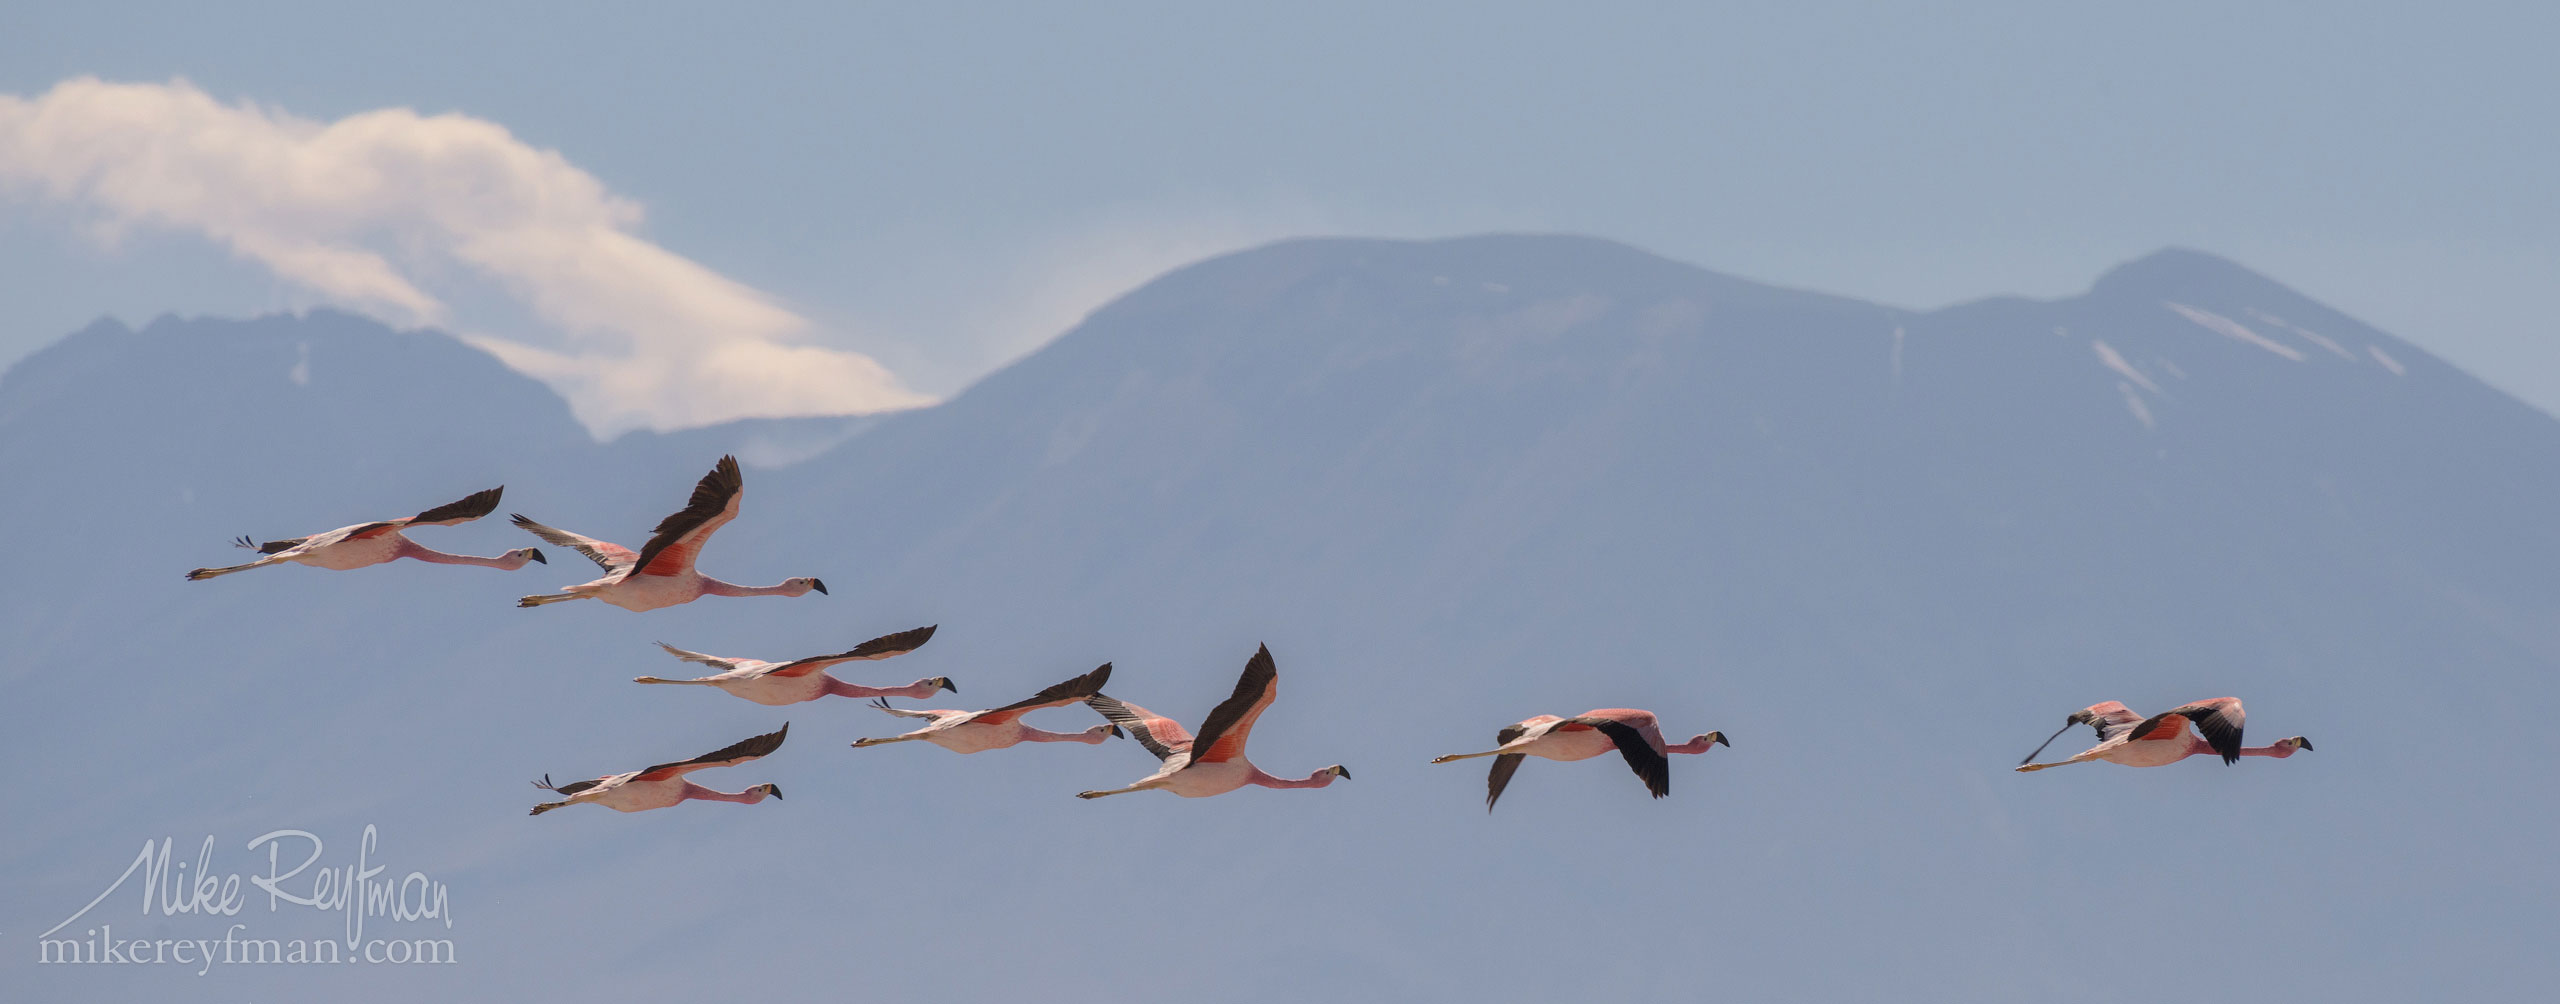 Andean Flamingo (Phoenicoparrus andinus). Salar de Atacama, Laguna Chaxa, San Pedro de Atacama, Atacama Desert, Antofagasta Region, Chile AA1-D1D9558 - Atacama and Altiplano. The Driest Desert and The High Plain - Mike Reyfman Photography